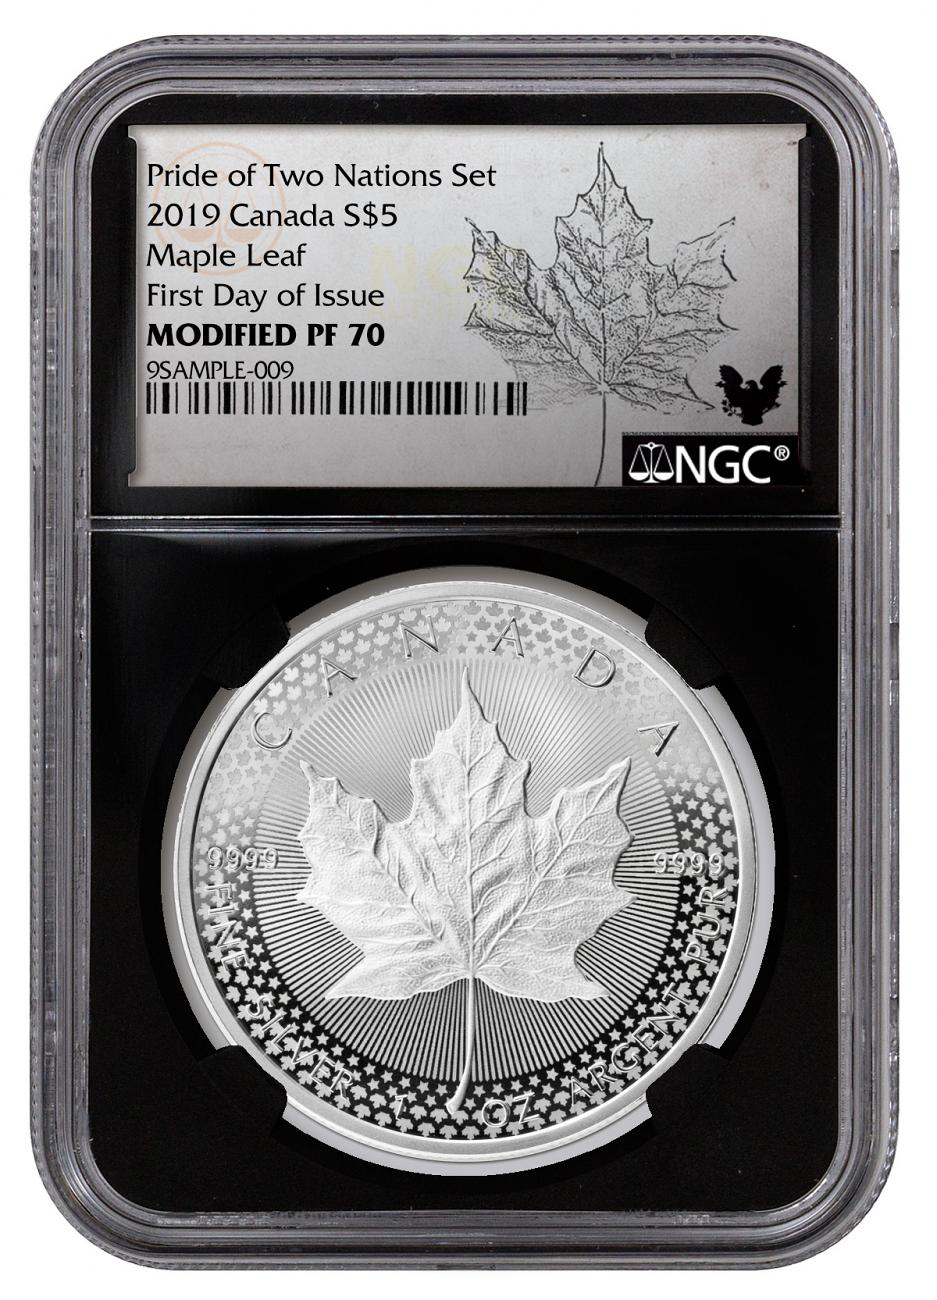 2019 Canada 1 oz Silver Maple Leaf - From Pride of Two Nations Coin Set Modified Proof $5 Coin NGC PF70 FDI Black Core Holder Exclusive Maple Label